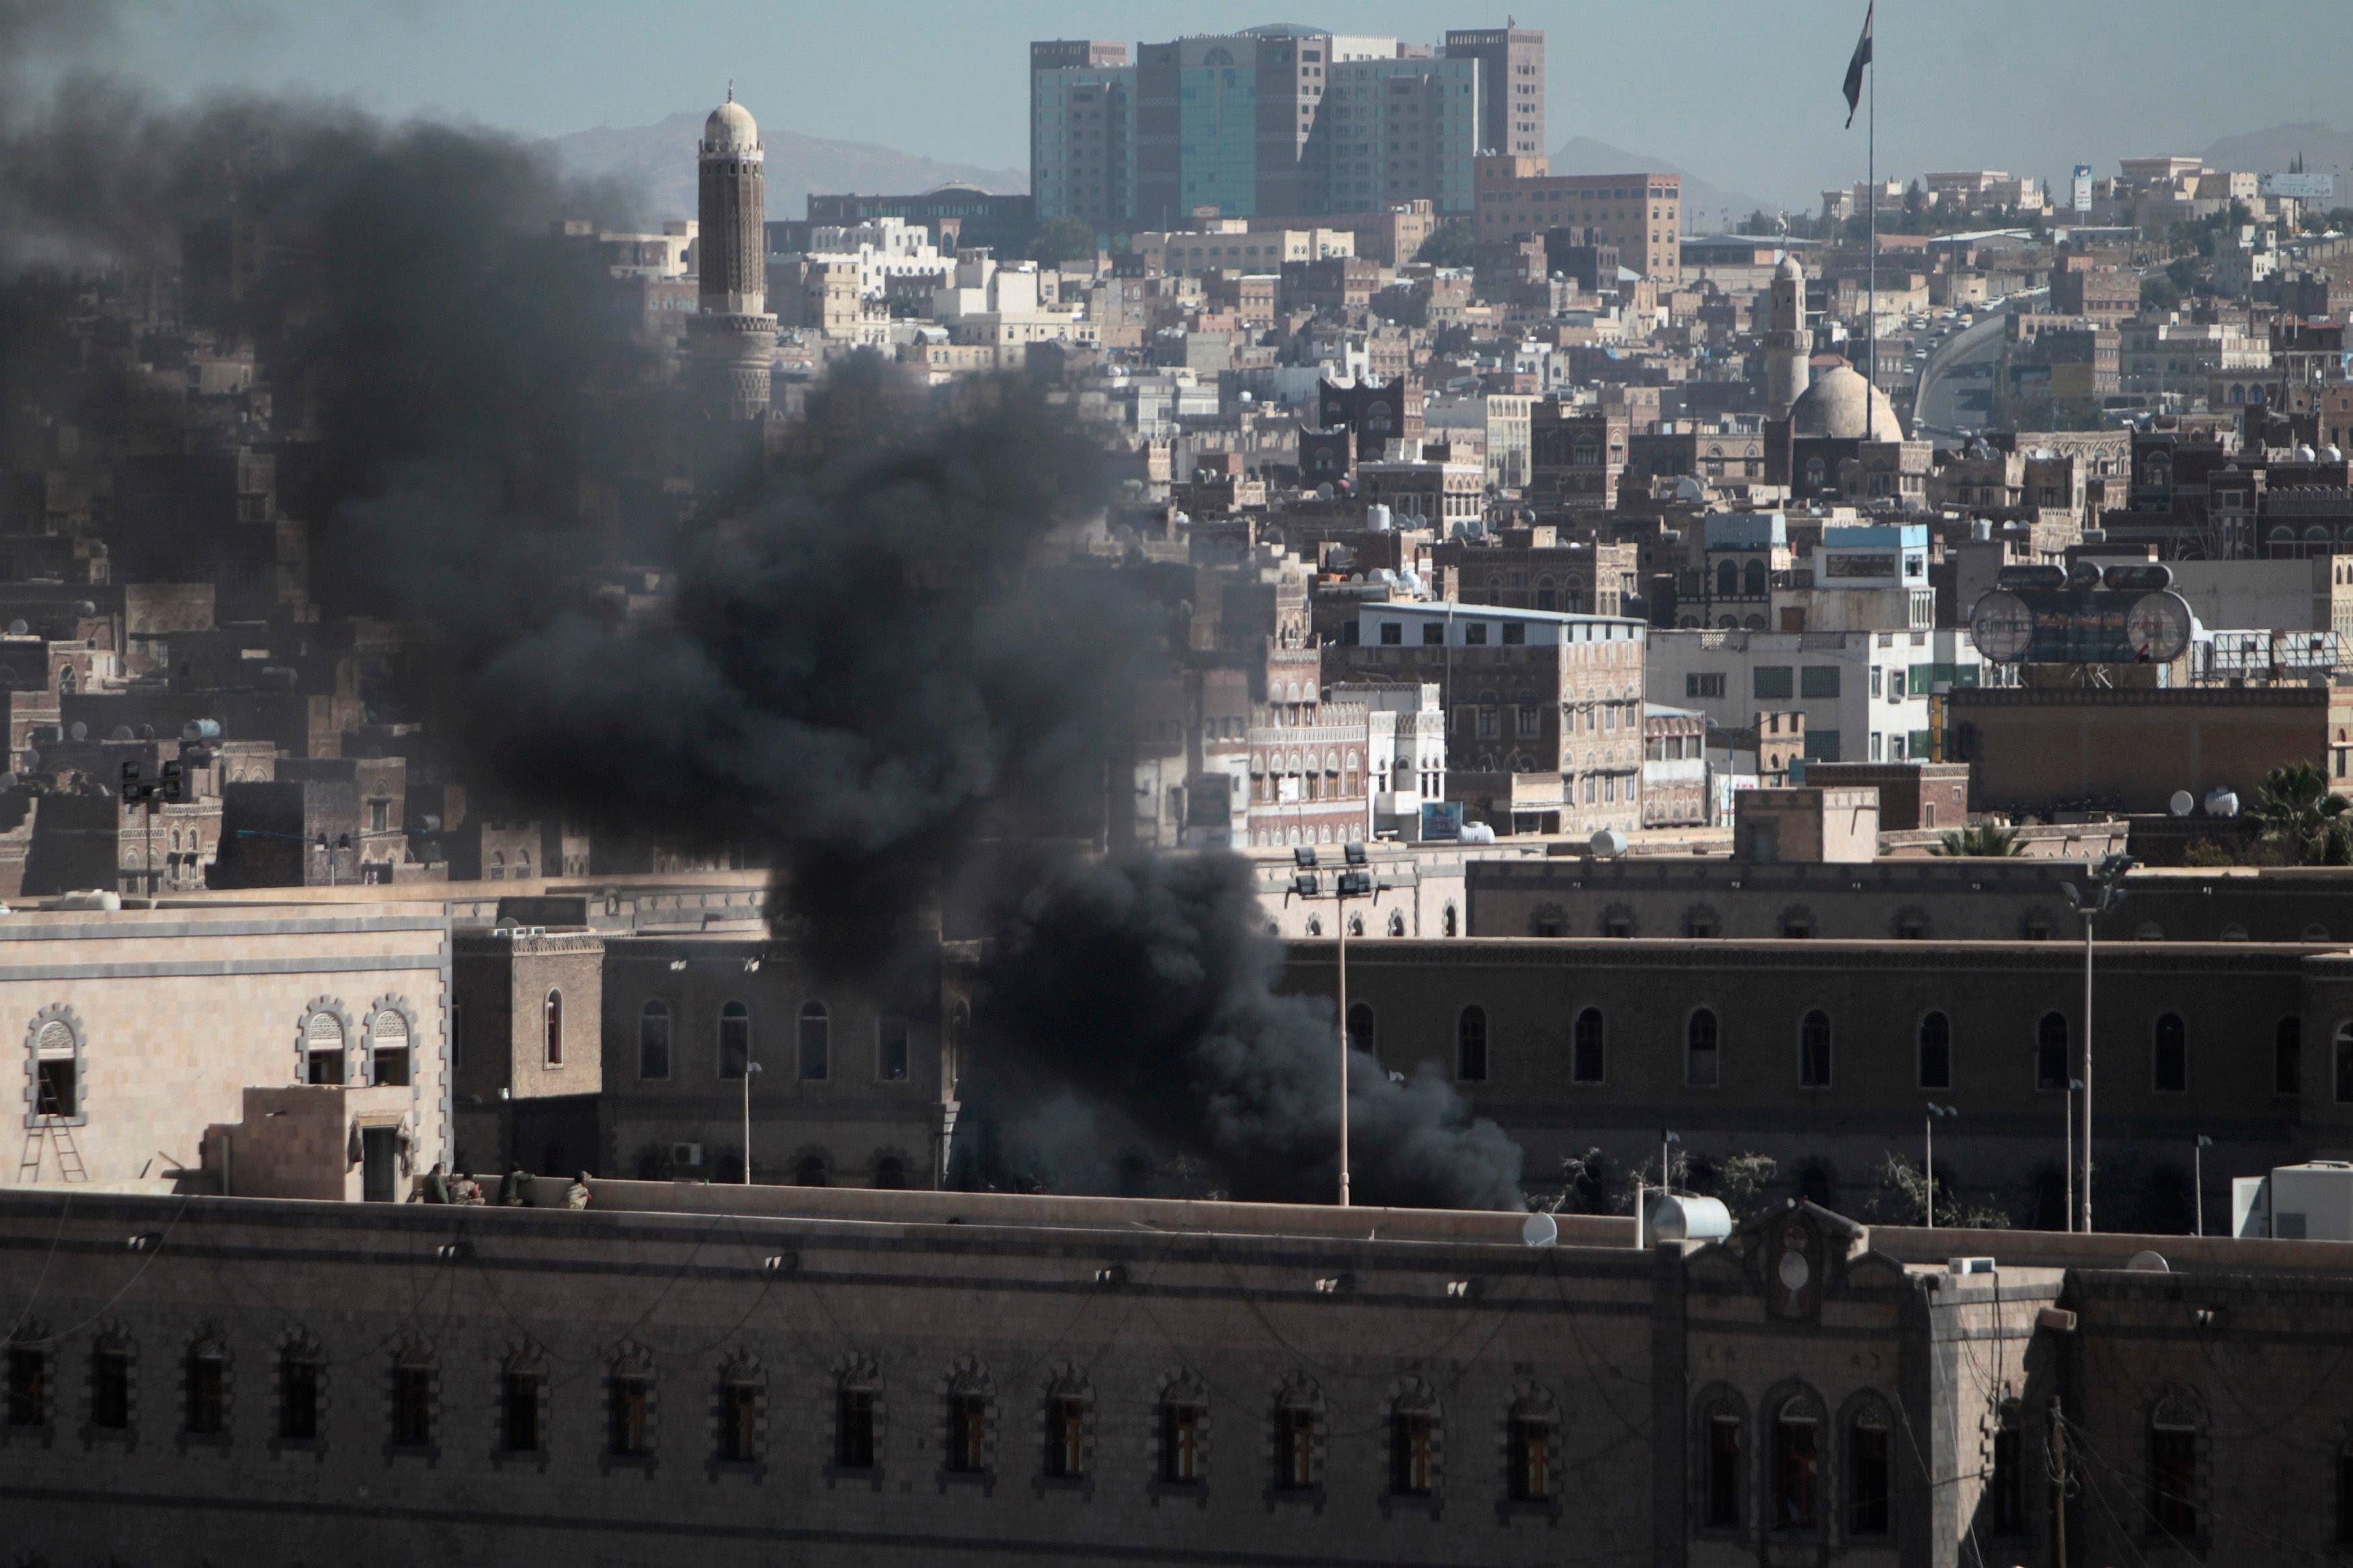 Smoke rises from the Defense Ministry's compound after an attack, in Sanaa Dec. 5, 2013. (Reuters)